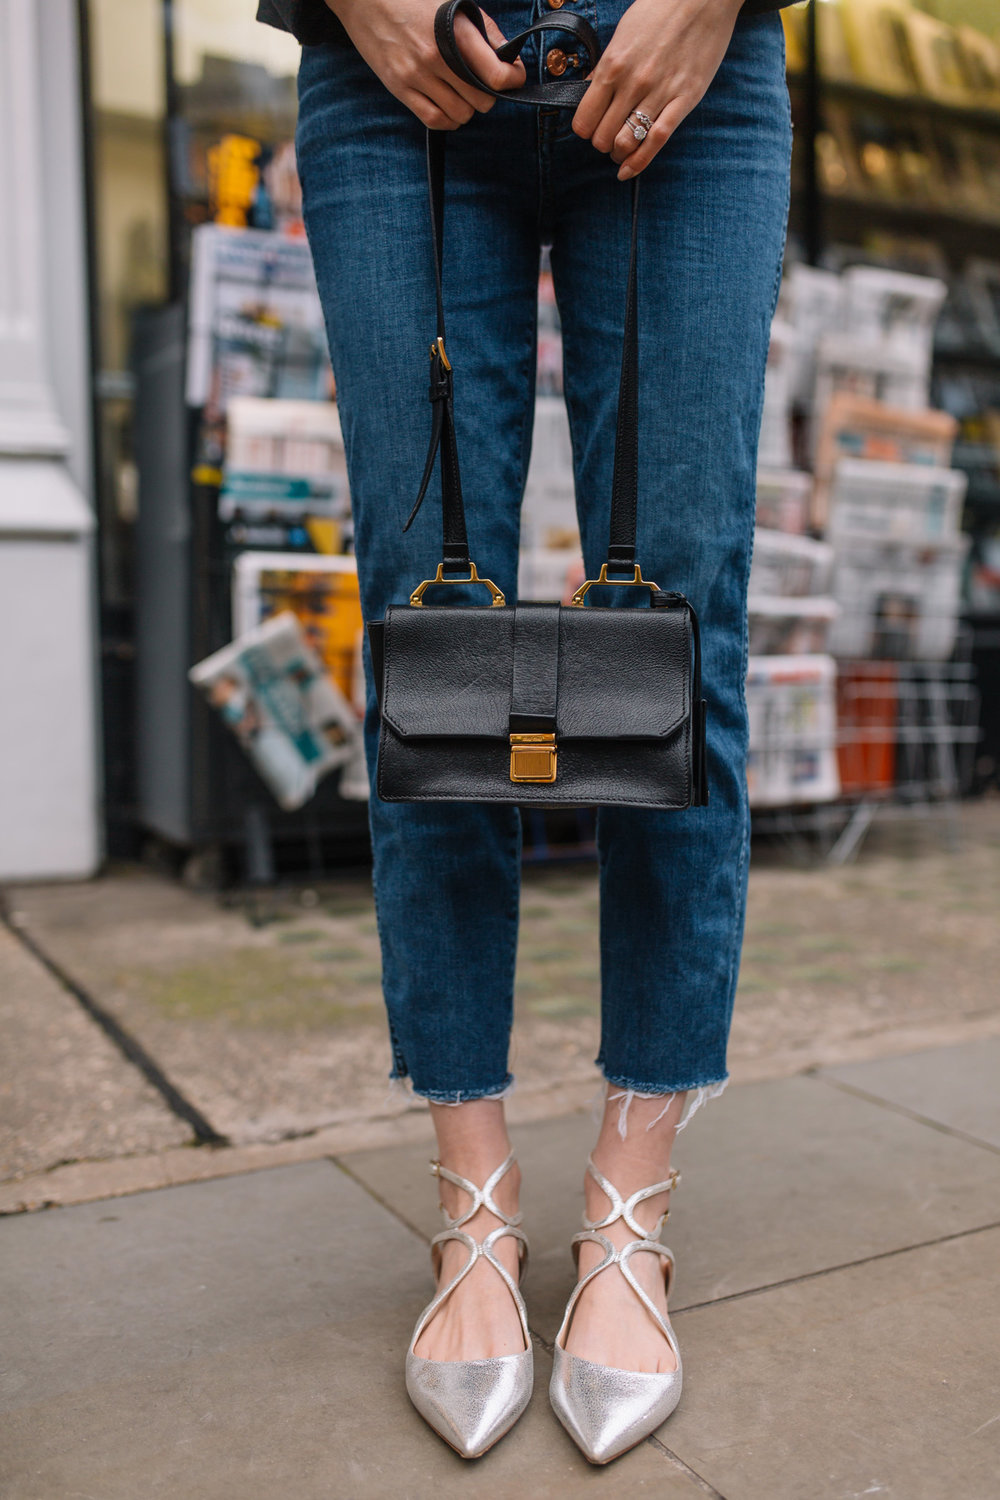 Casual Mayfair London Outfit-9.jpg